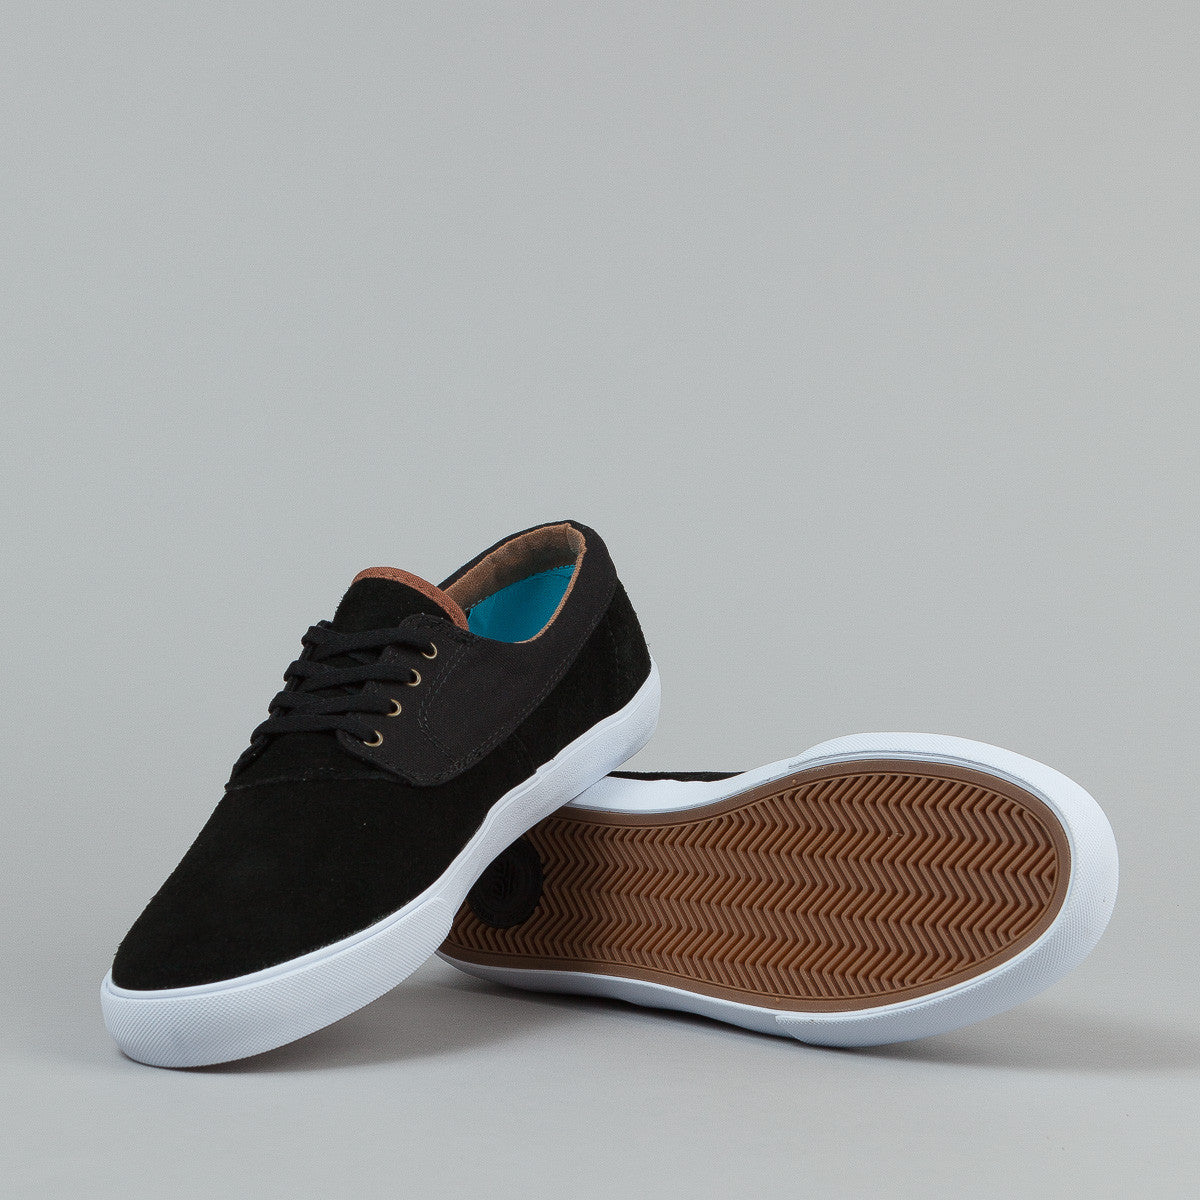 Lakai Anchor Camby Nesser Shoes - Black Suede